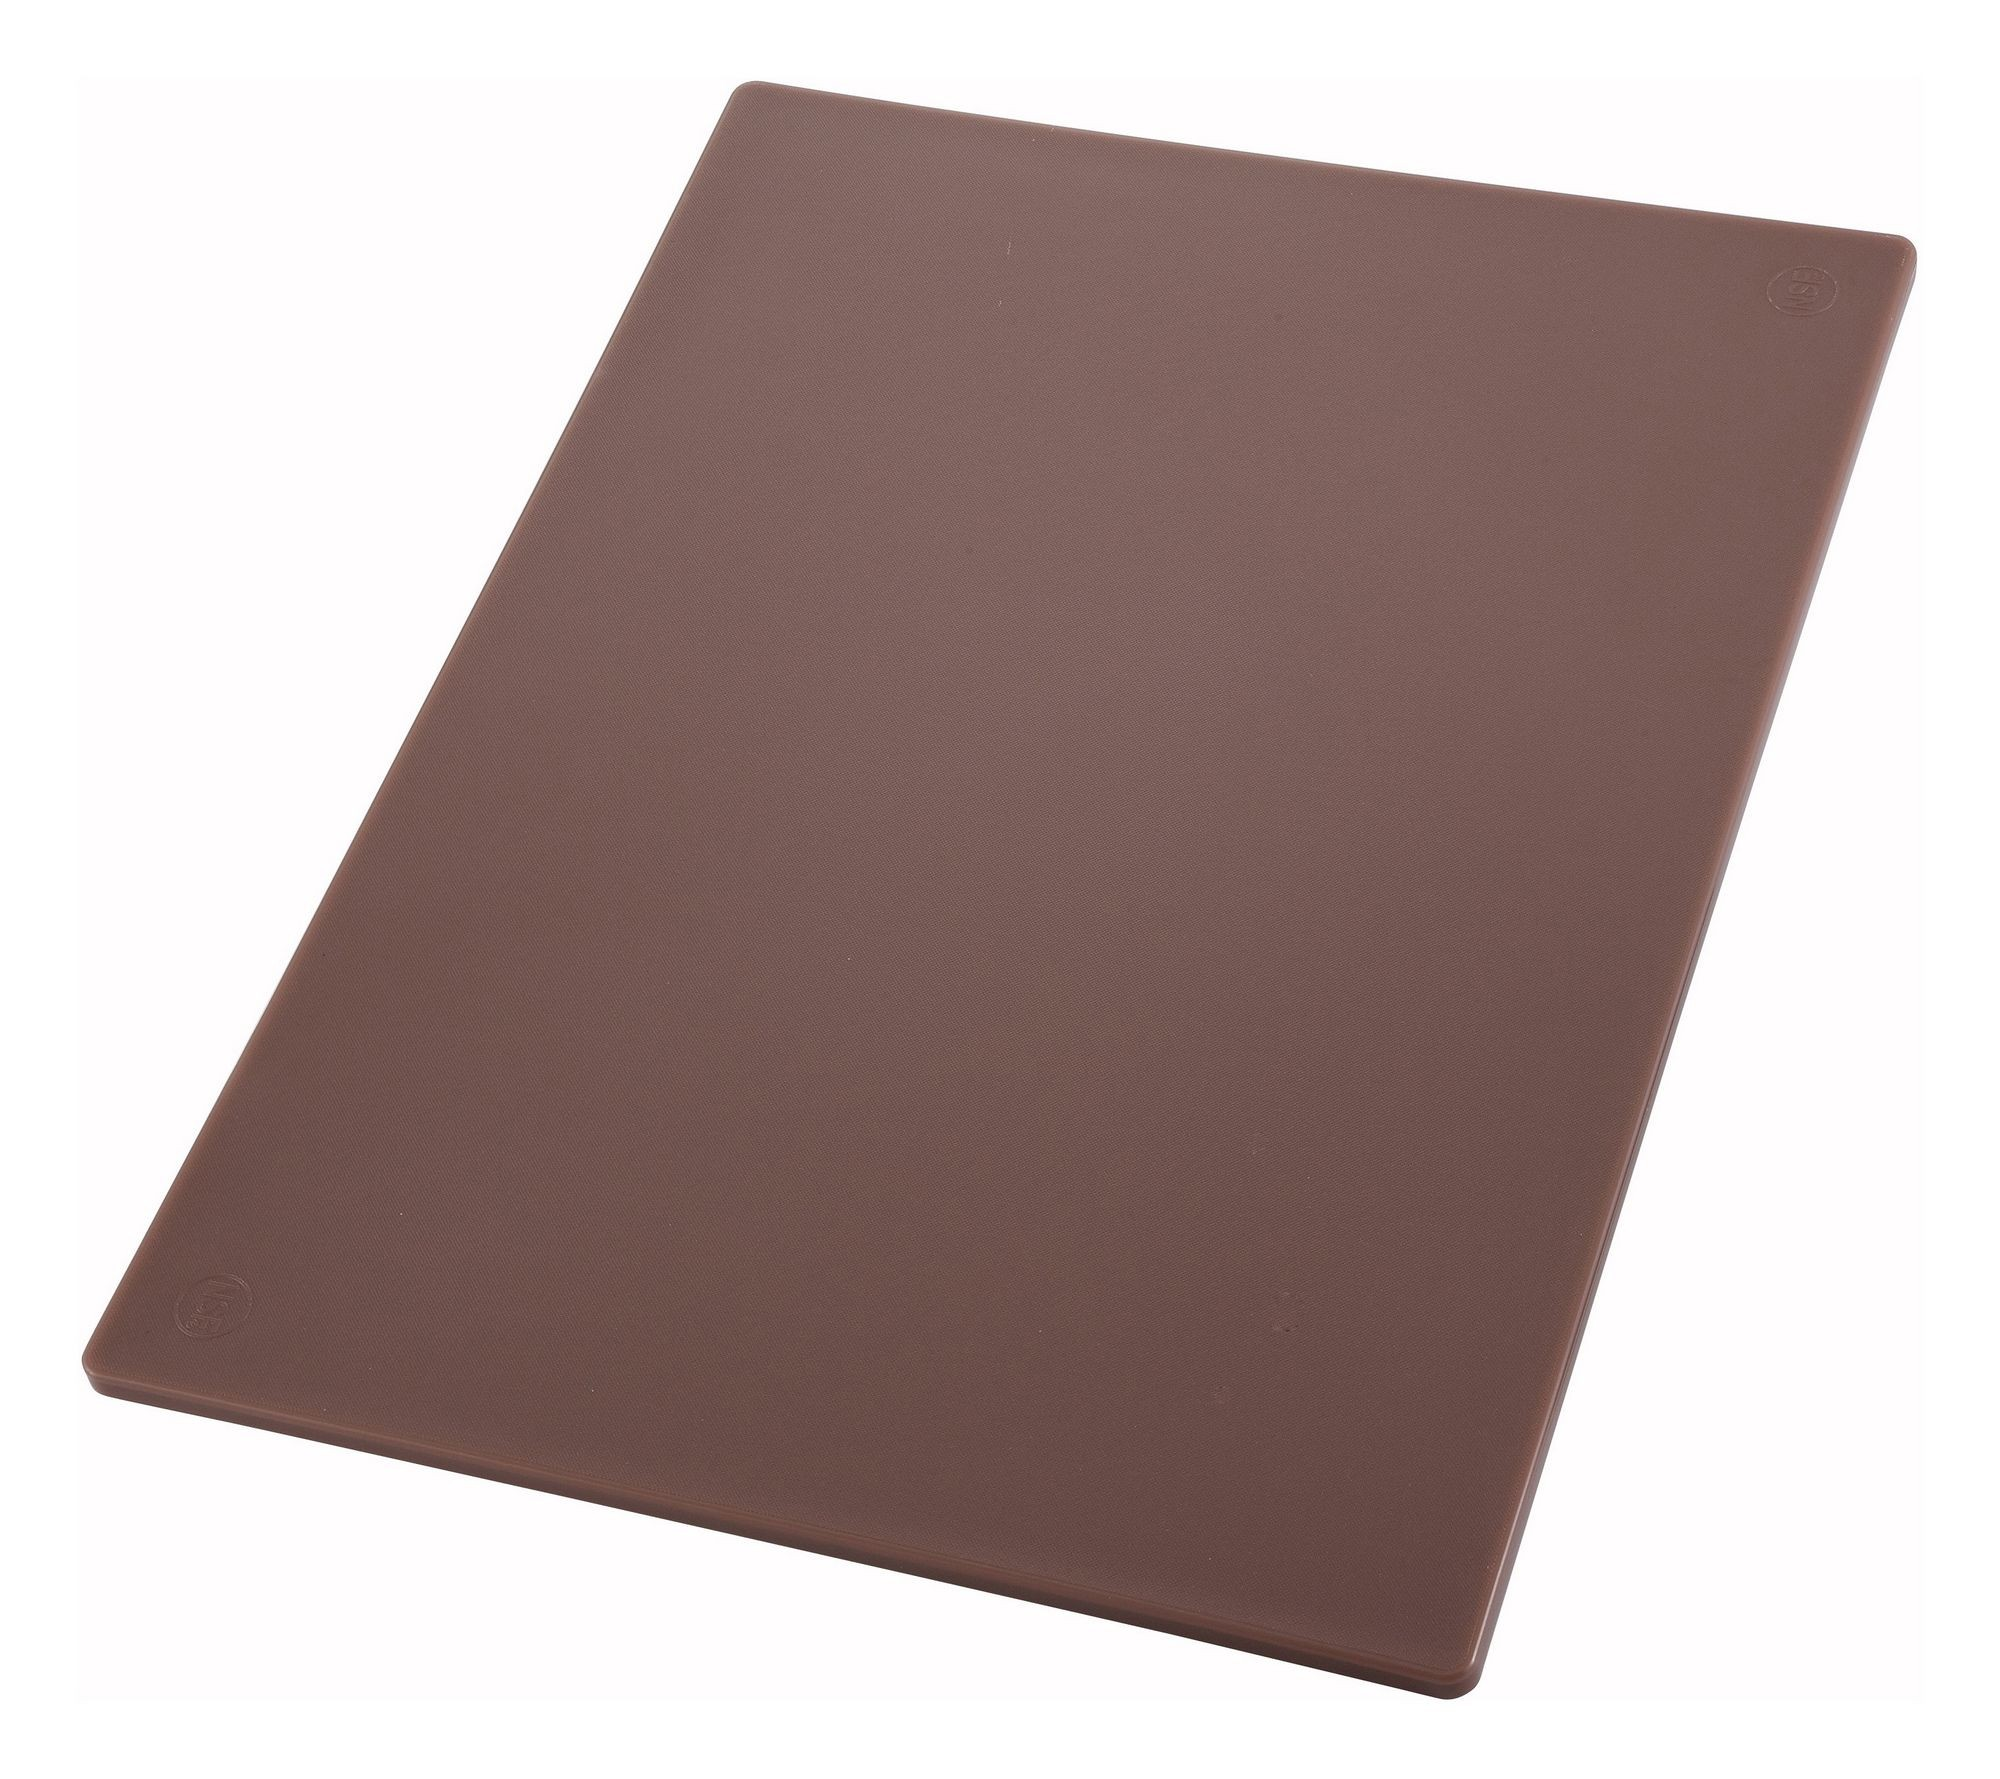 "Winco CBBN-1824 Brown Plastic Cutting Board 18"" x 24"" x 1/2"""